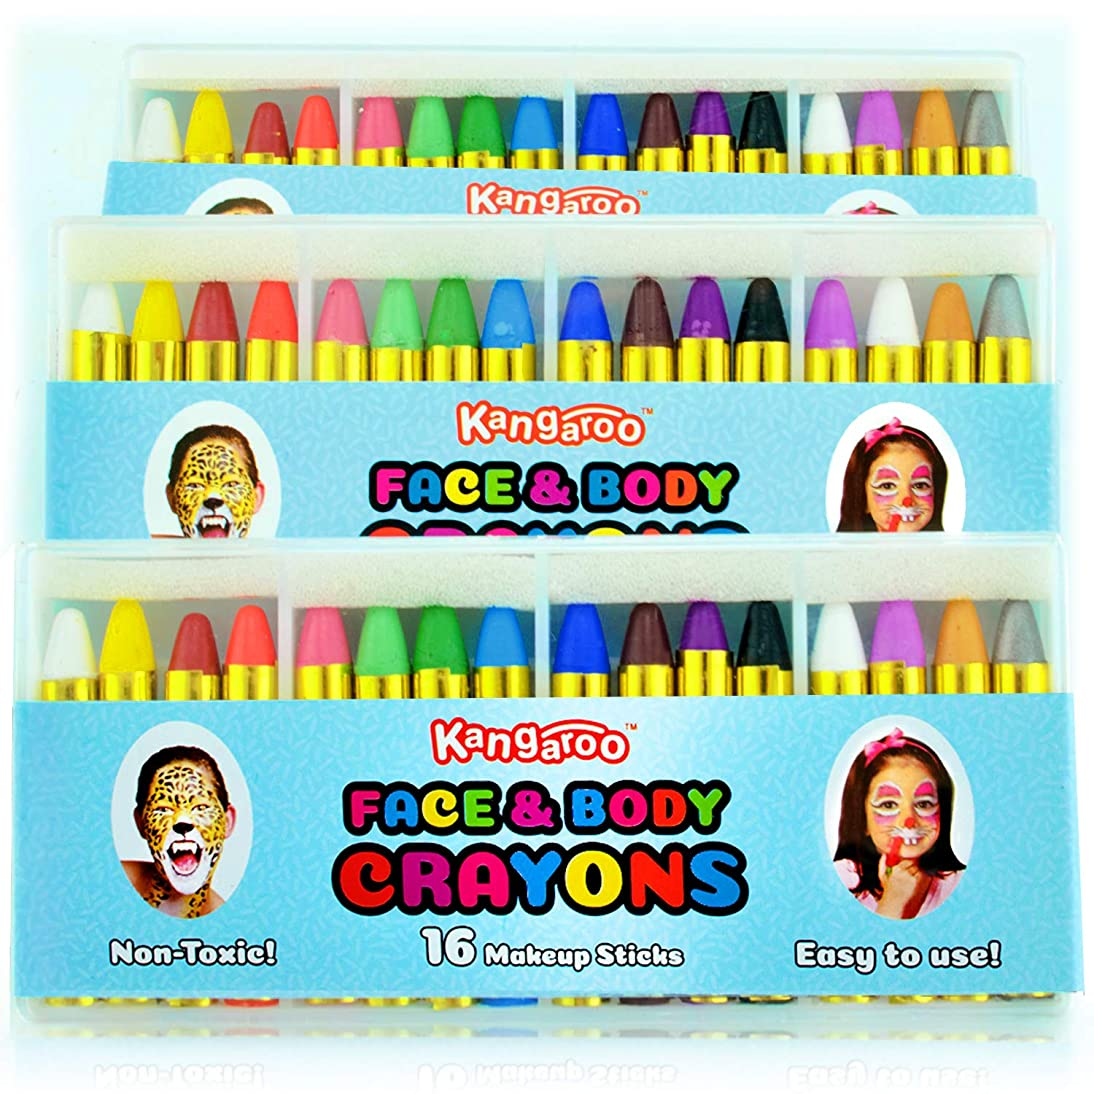 Kangaroo's Face Paint Crayons for Kids, 16 Colors Face & Body Painting Makeup Crayons, Safe for Sensitive Skin, Metallic & Classic Colors, Great for Birthday Party's Fundraisers & Halloween